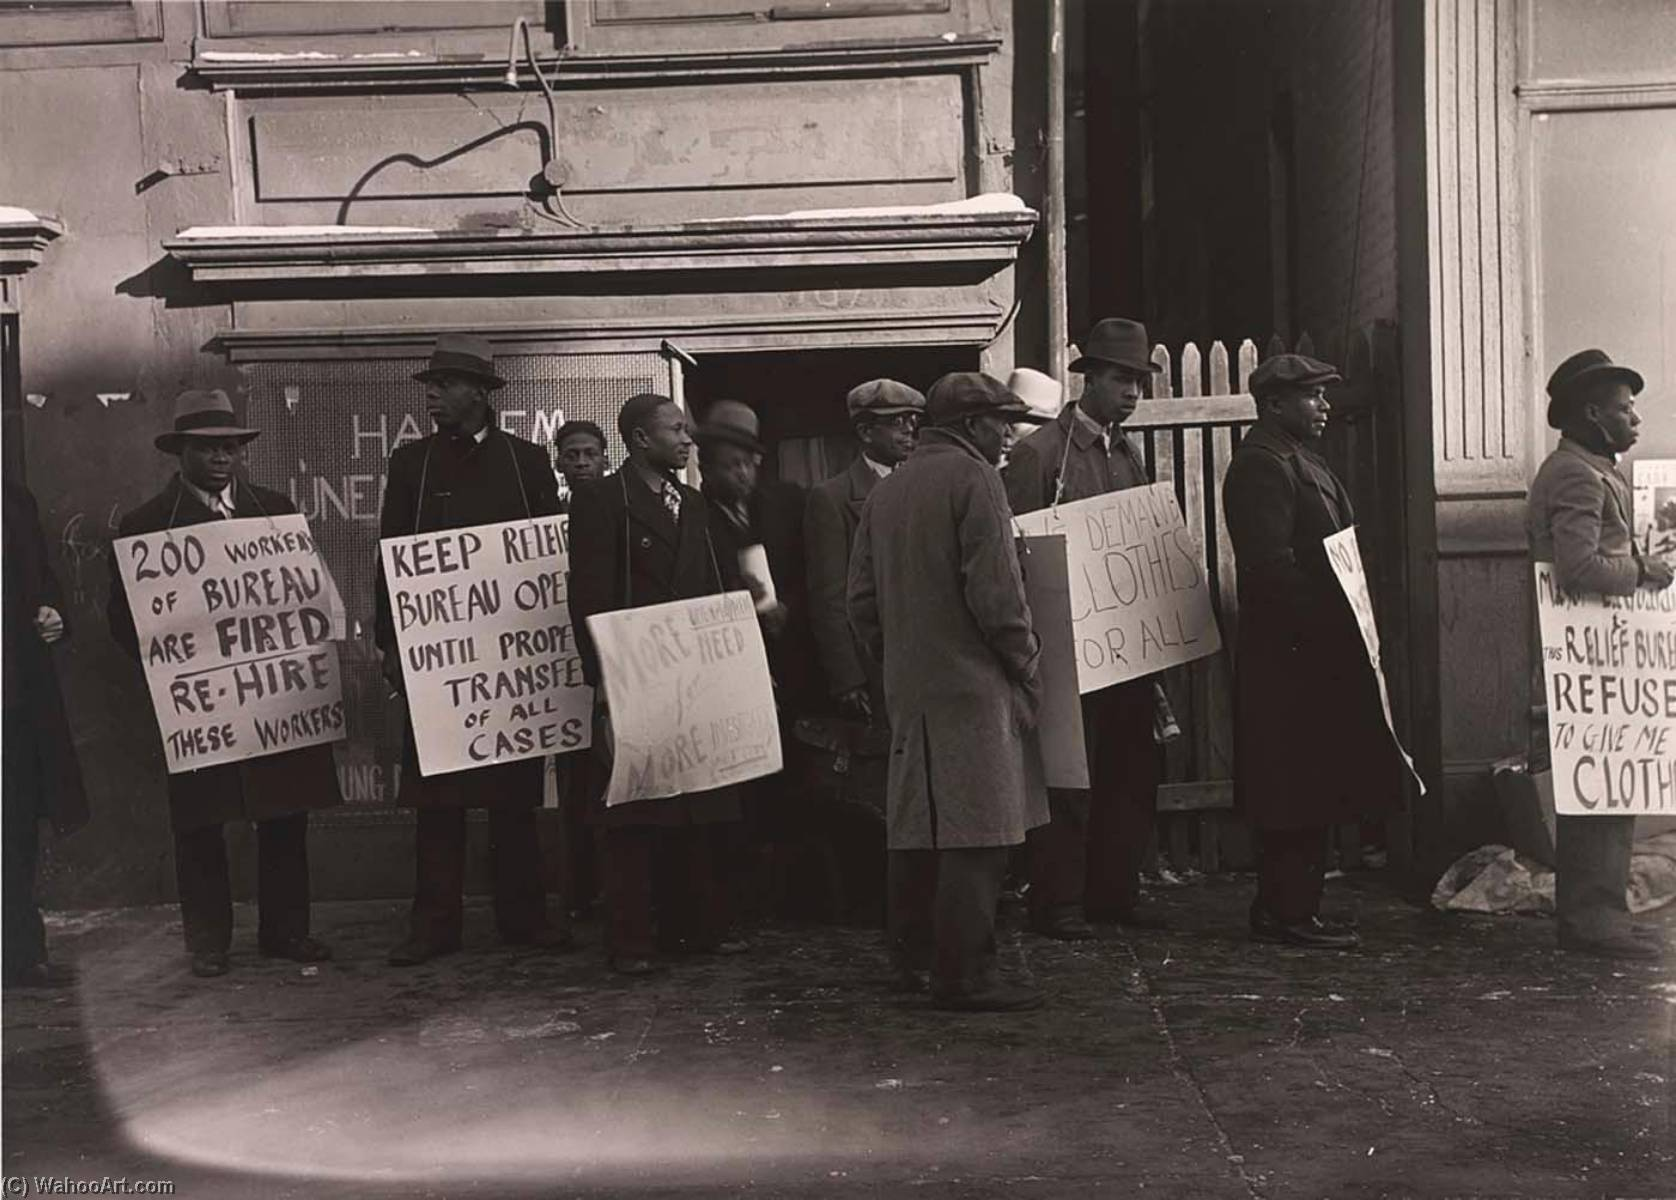 Unemployment Council Pickets, Print by Aaron Siskind (1903-1991, United States)